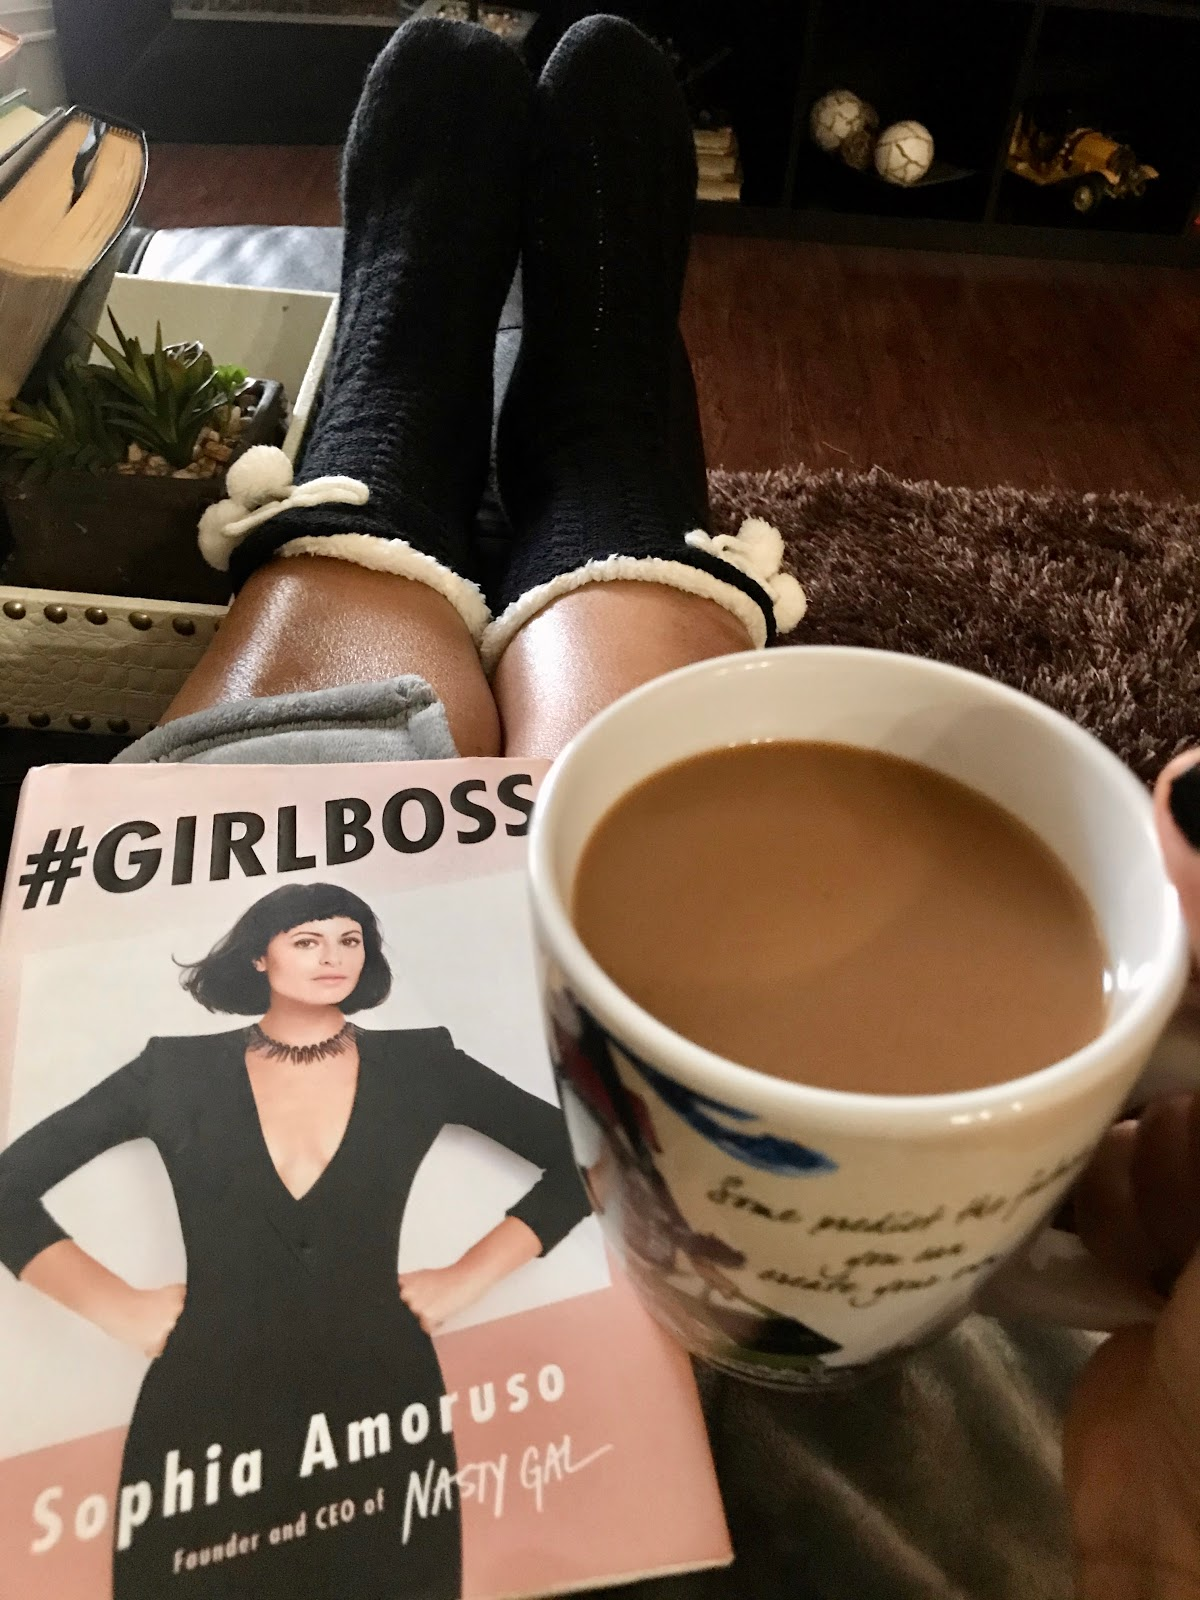 Cozy socks, coffee in a cup, and a girl boss book is essential to doing winter with ease.  Wearing comfy and cozy clothes in the morning also sets my mood in a great direction. I notice being cold makes me cranky, so it is a must for me to invest in thick socks and a beautiful robe